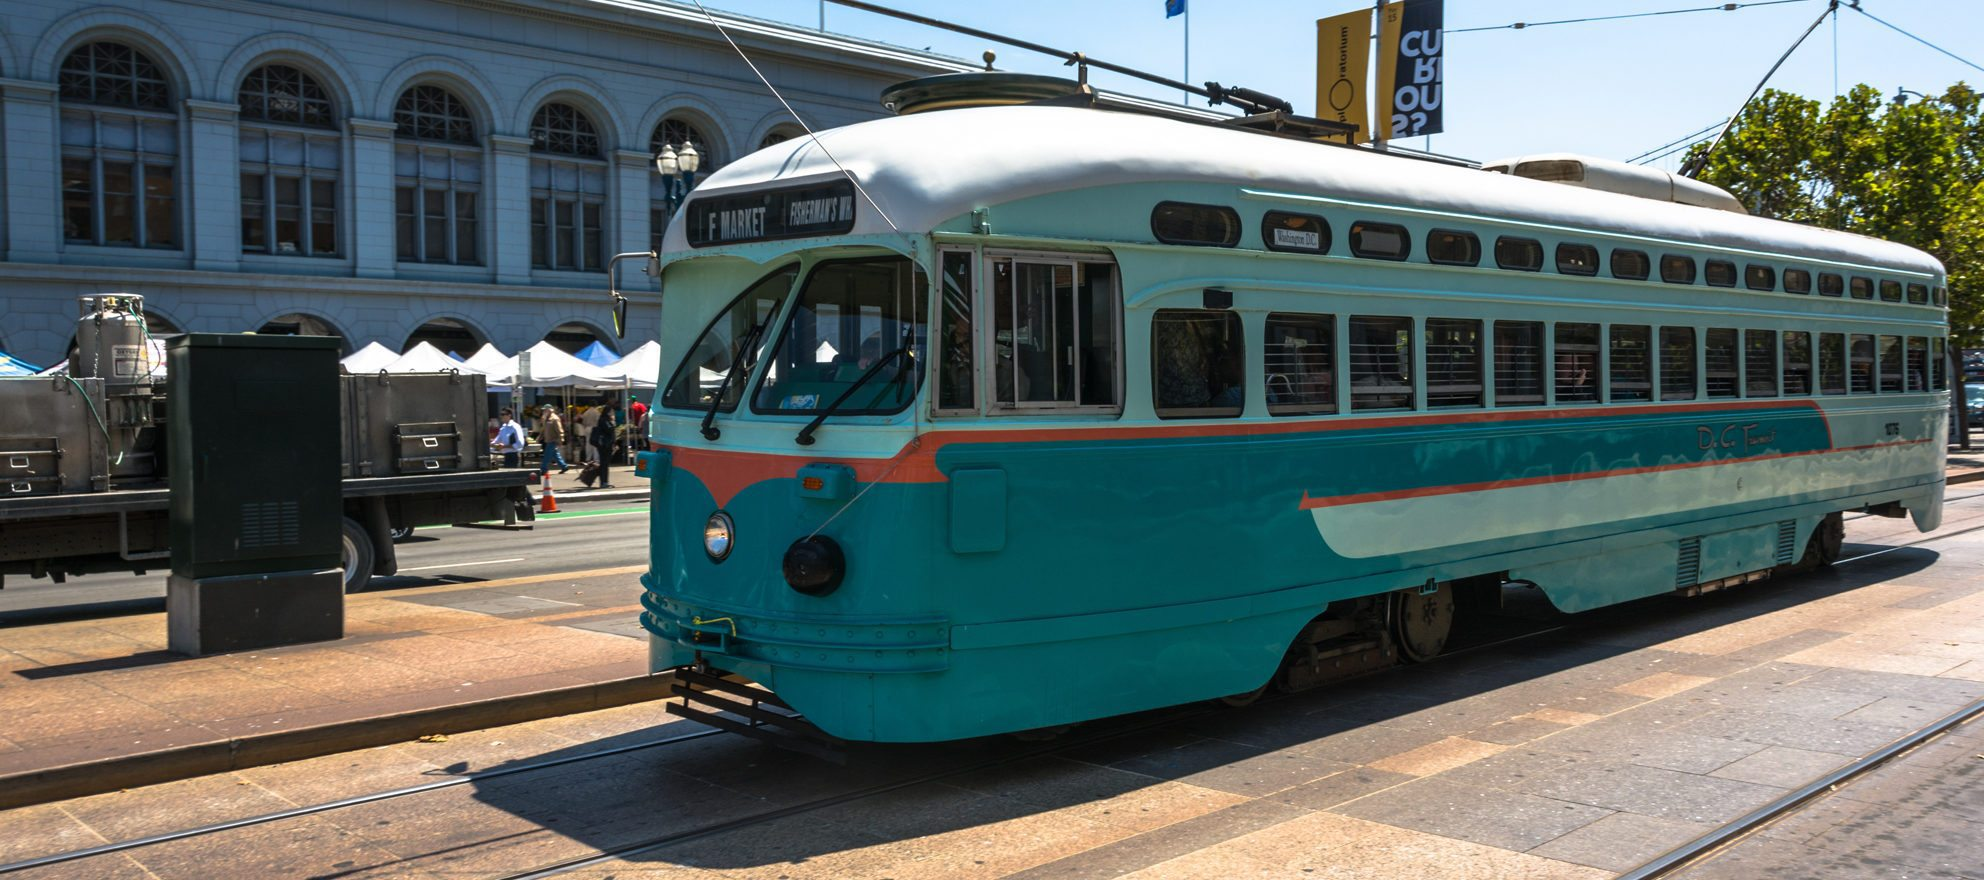 San Francisco is the no. 2 city for transit